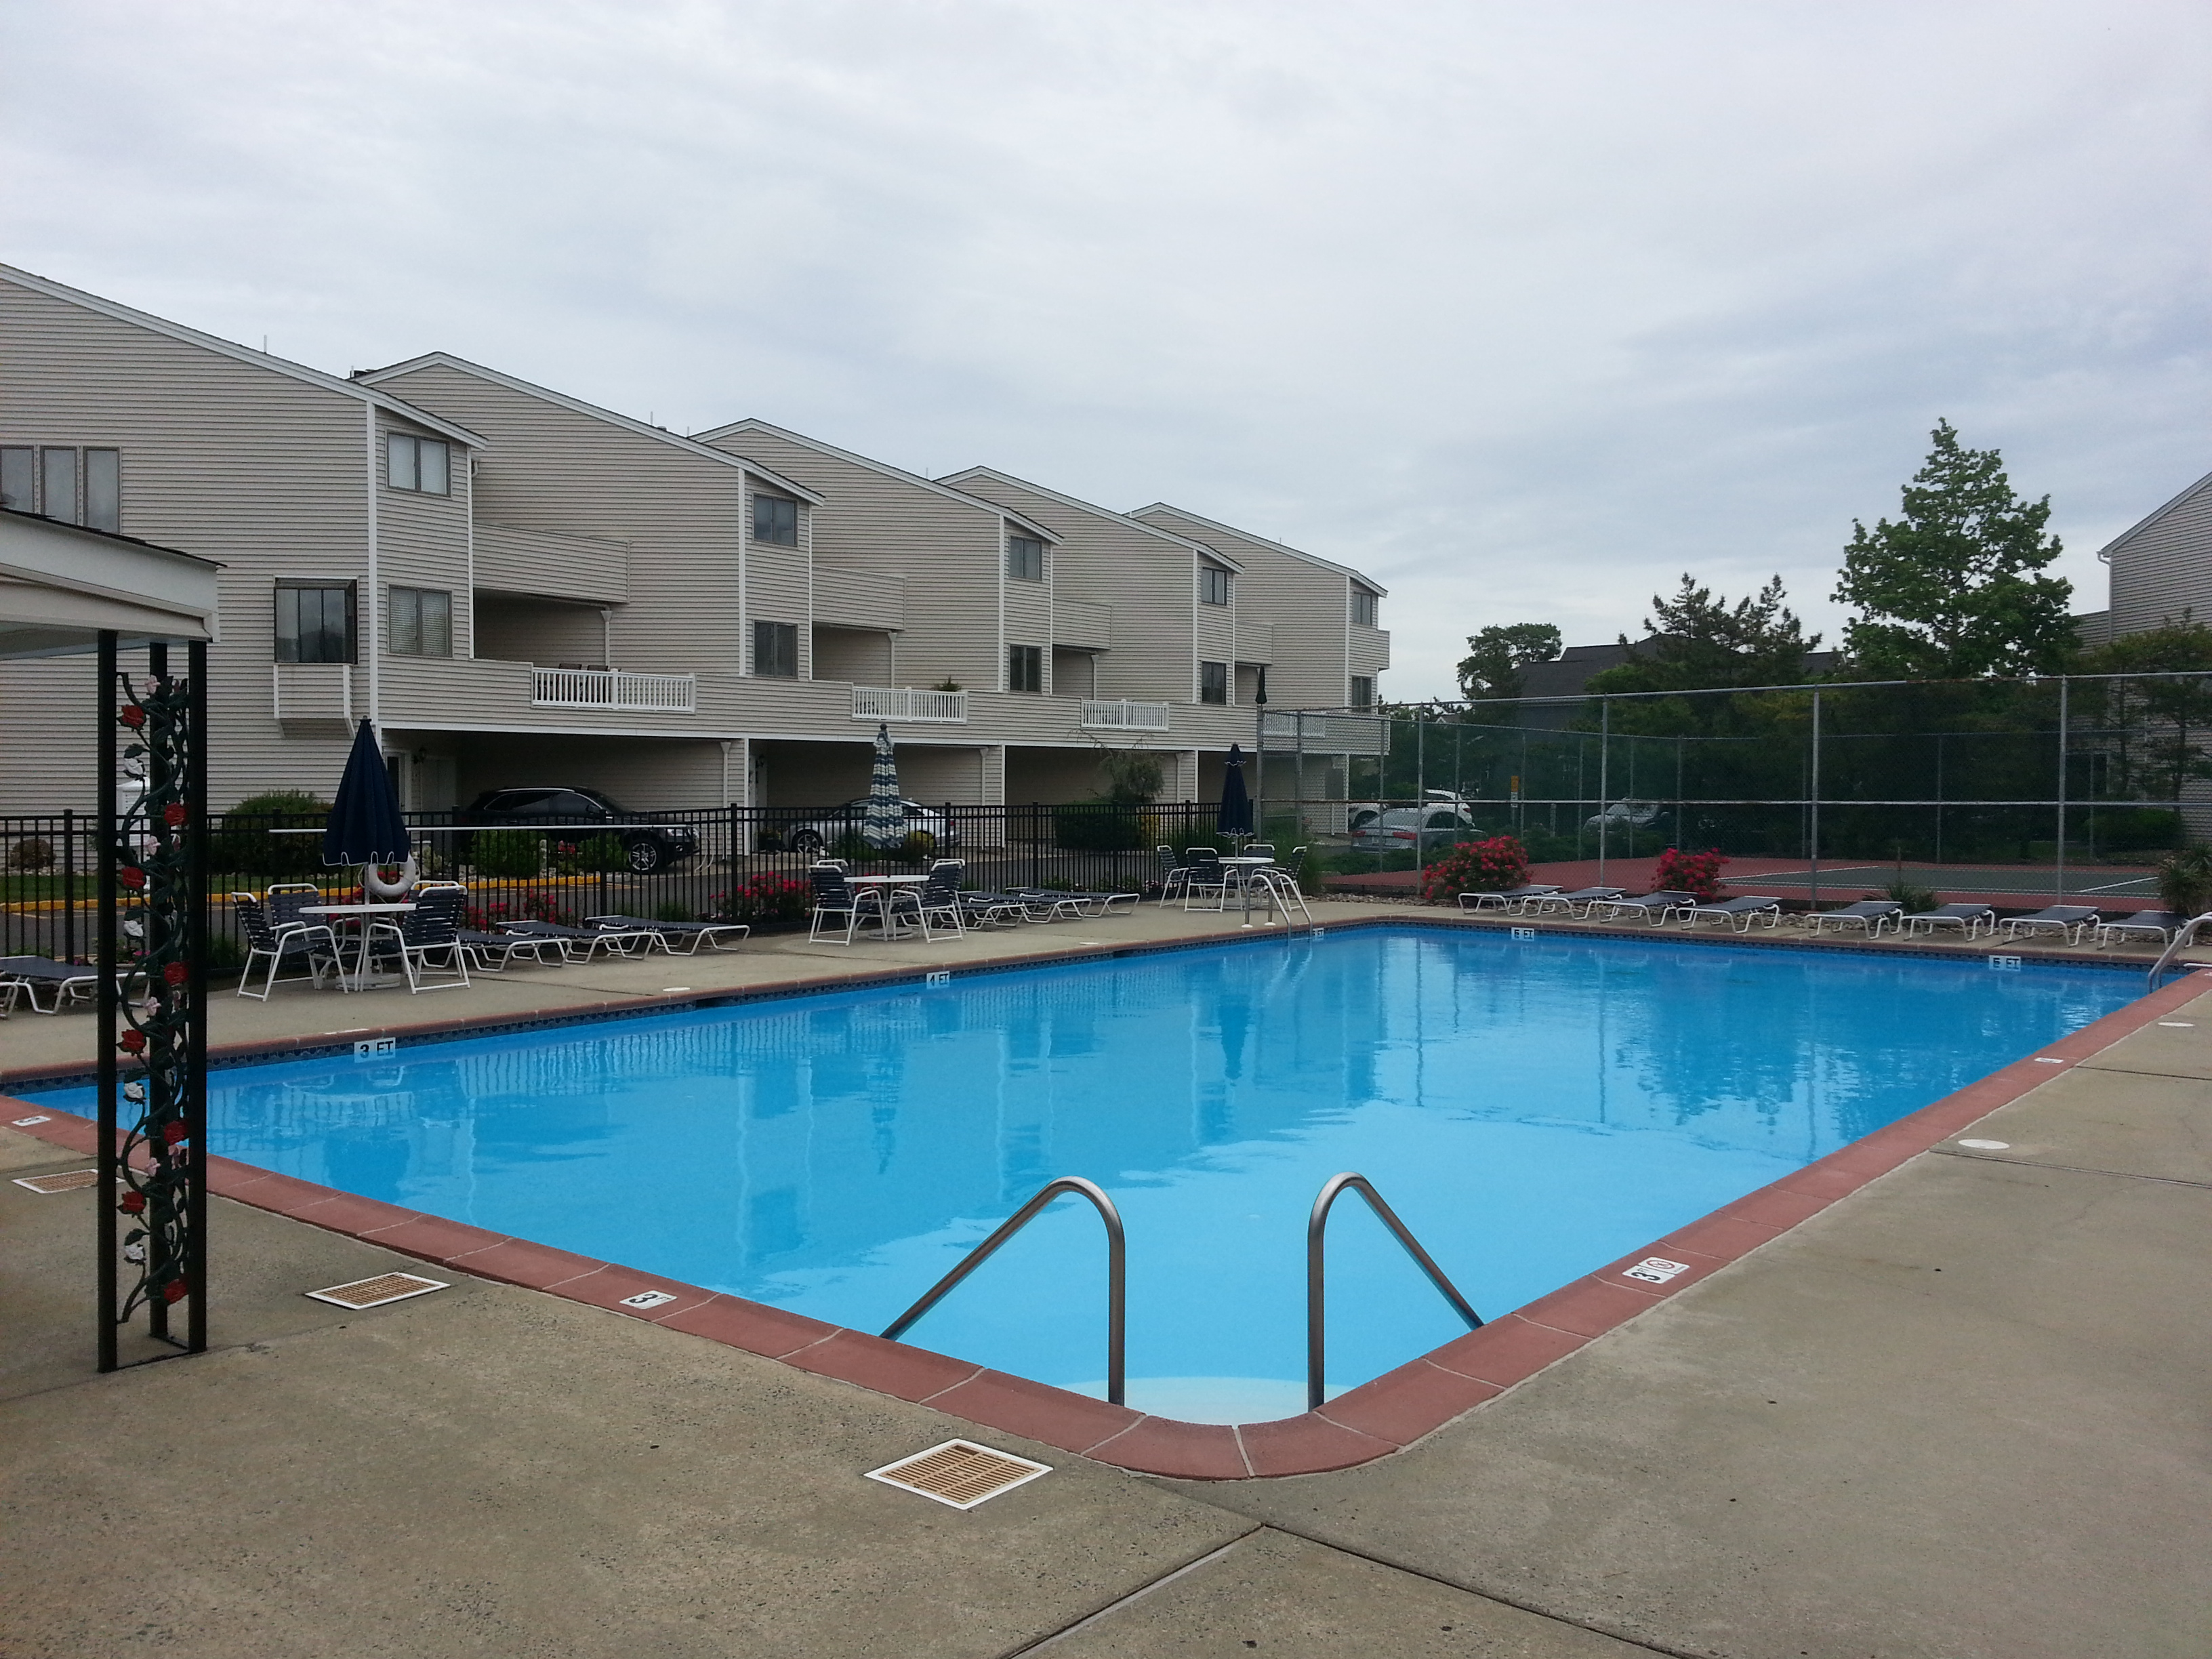 The Sea Winds community pool is conveniently located in the center of the complex.